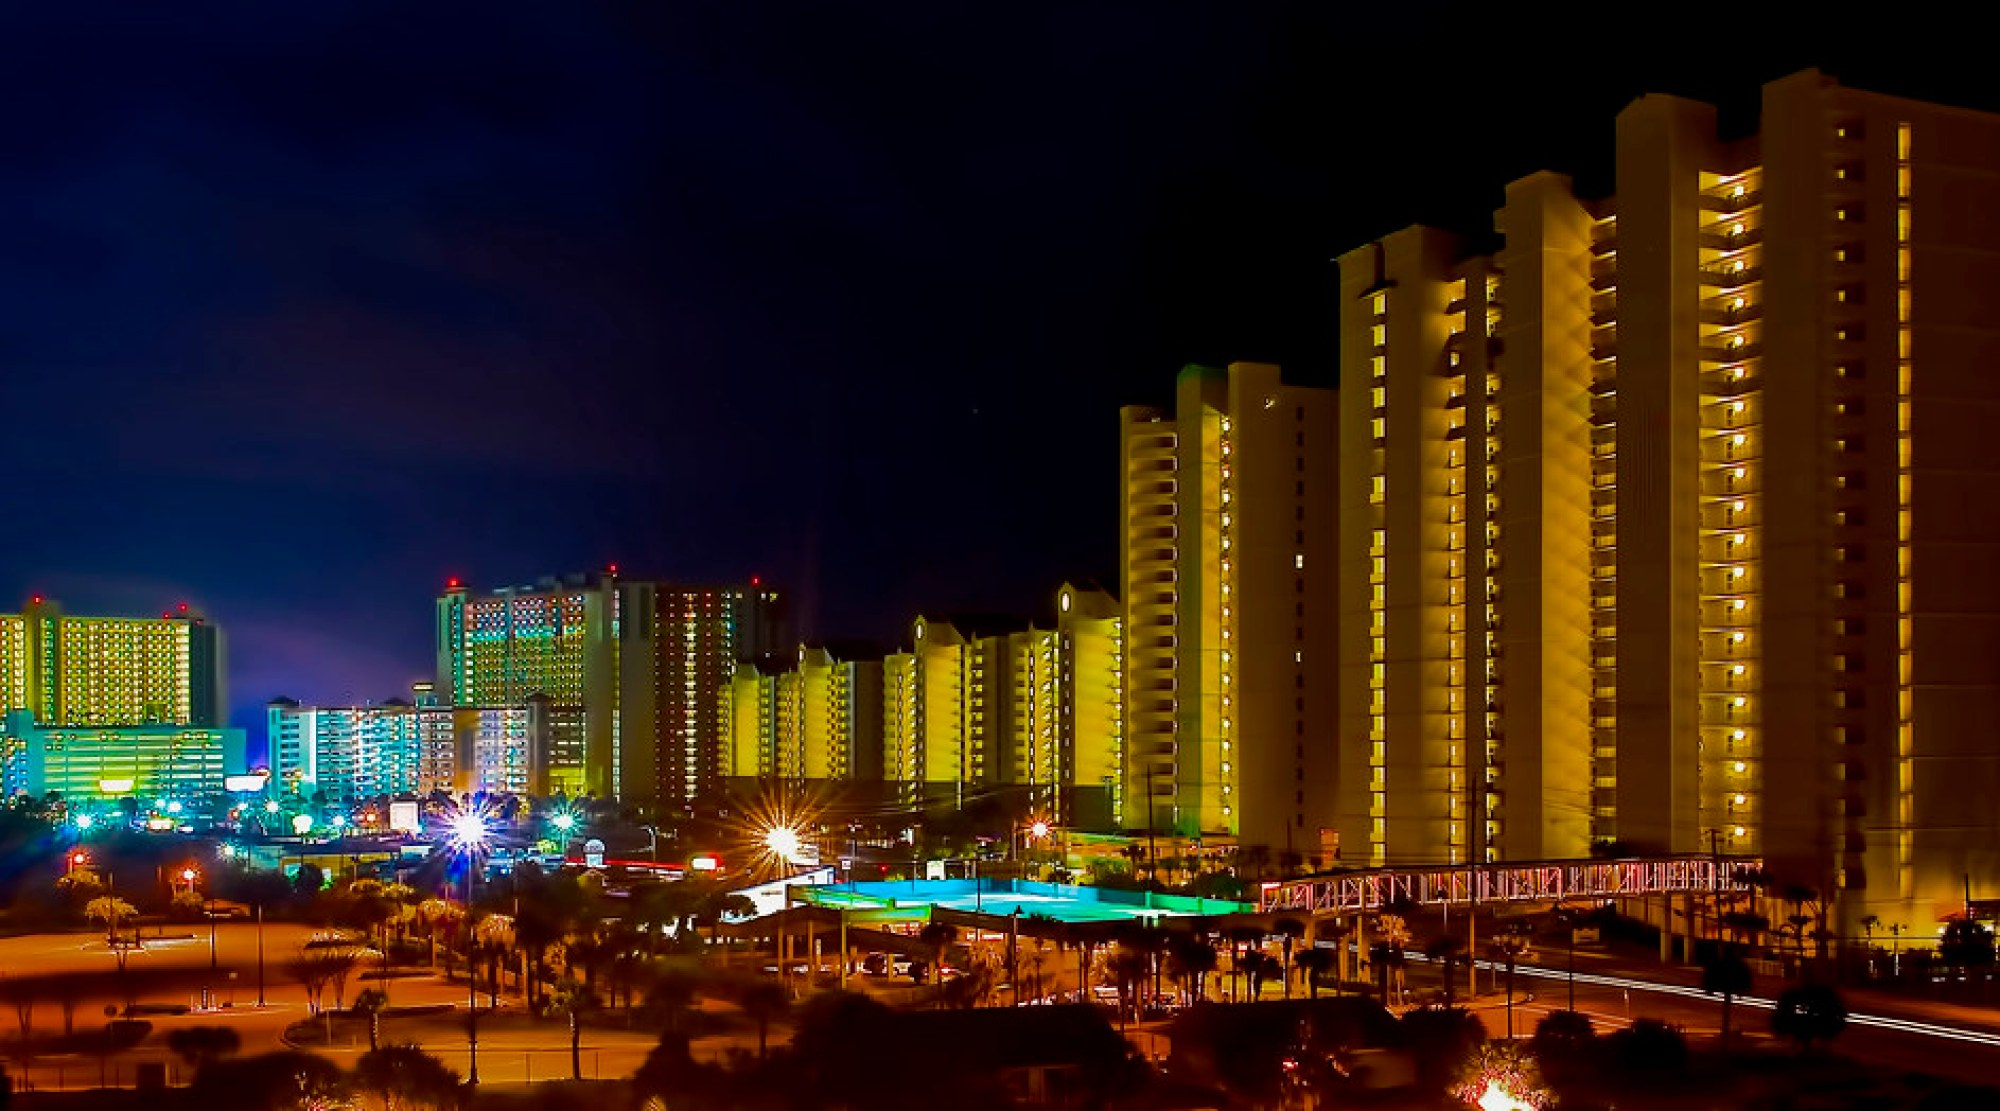 The skyline of Panama City Beach, Florida, U.S.A.